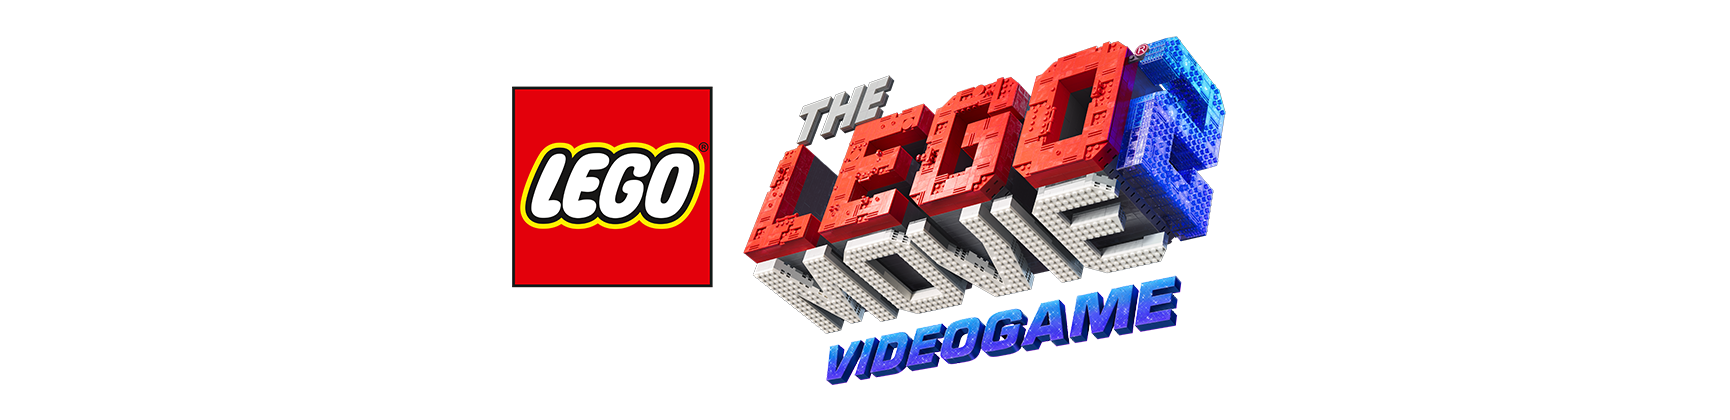 LEGO Movie 2: The Videogame logo